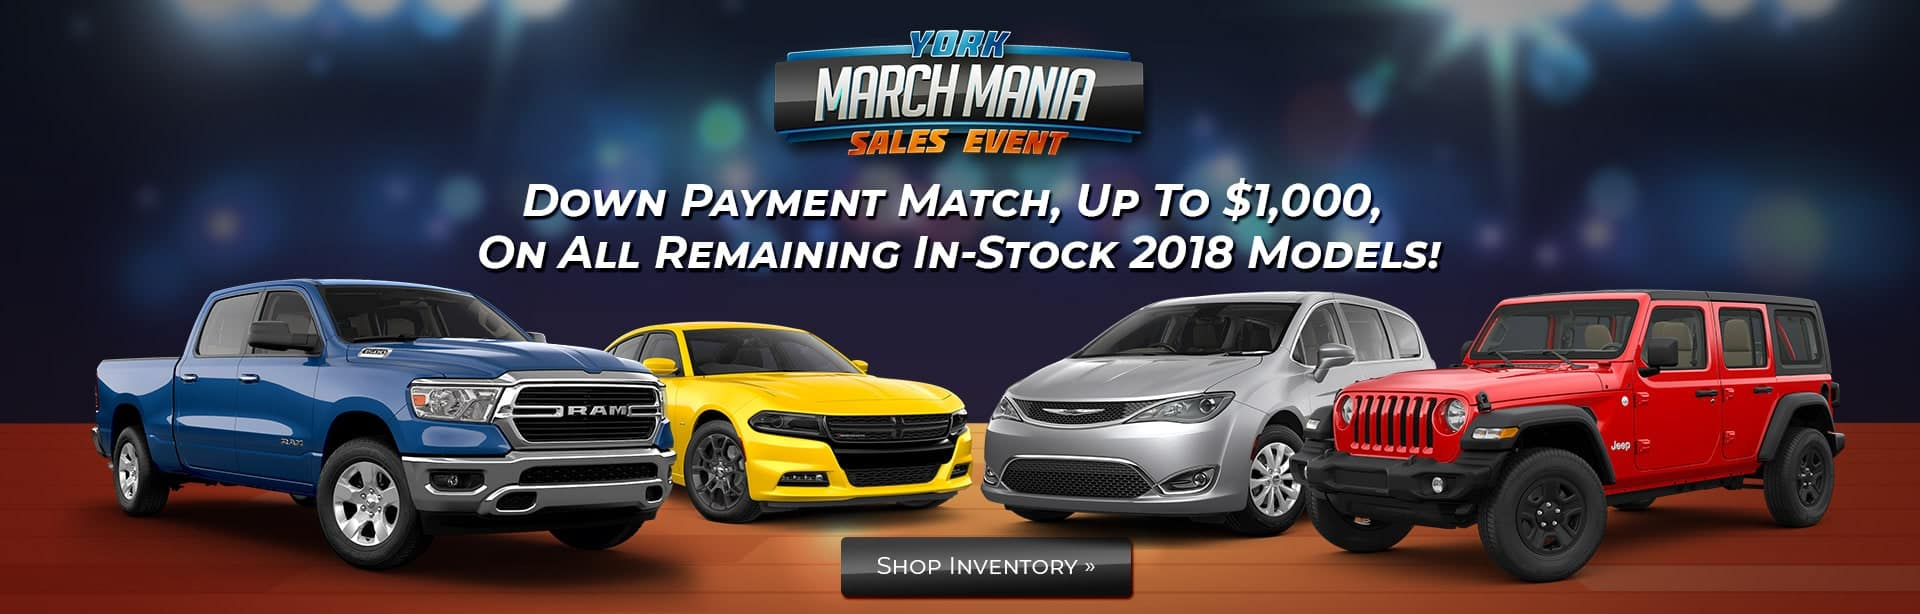 We'll match your down payment on a new vehicle!